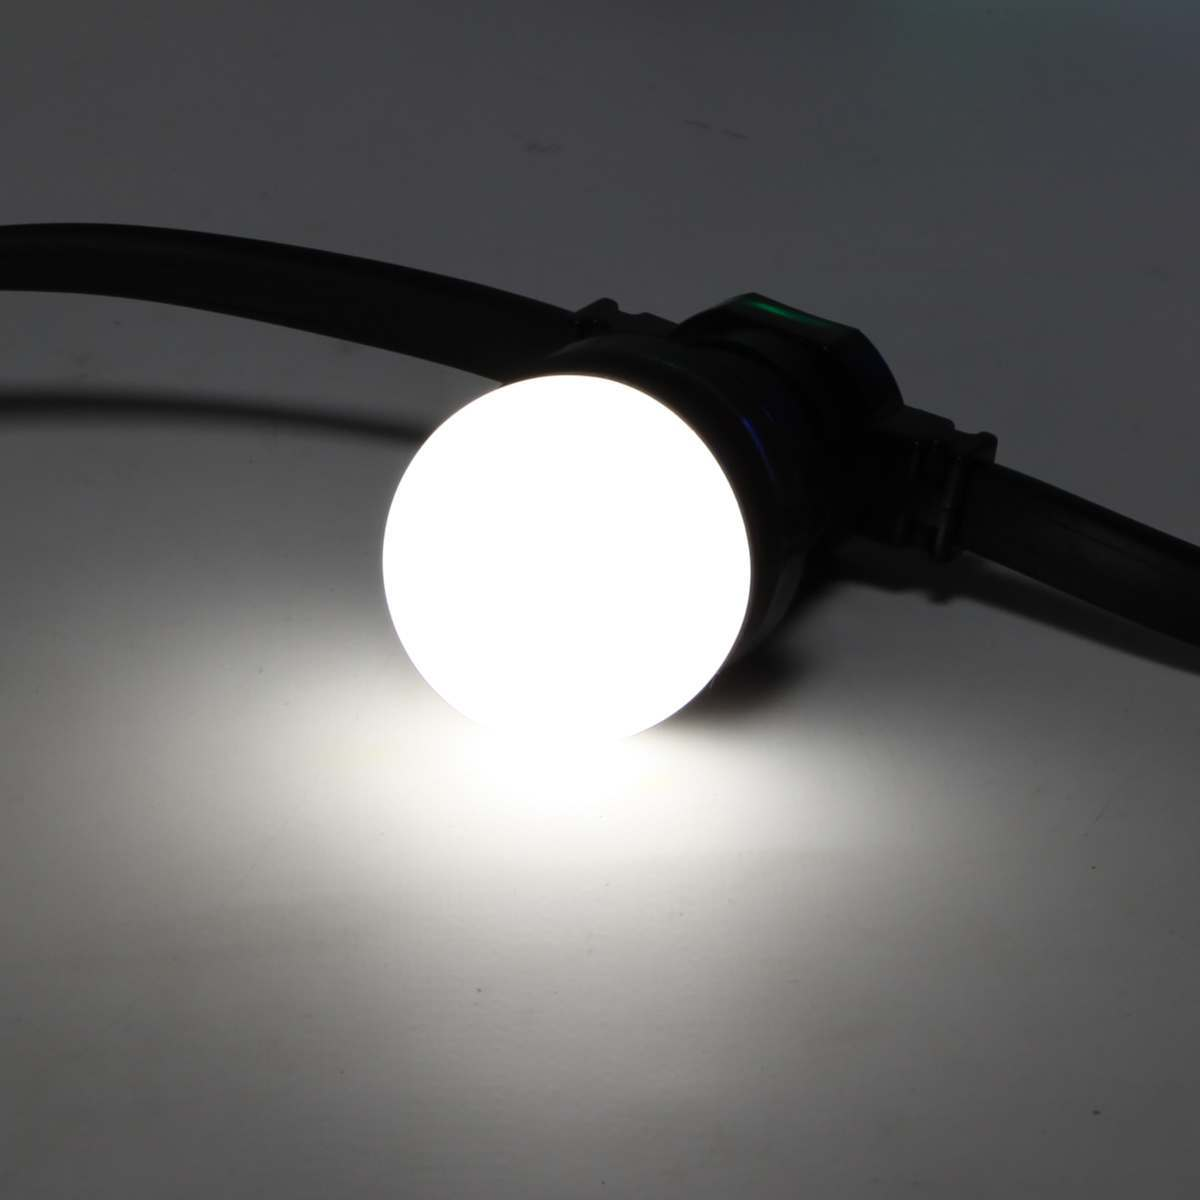 e27 led festoon bulb. Black Bedroom Furniture Sets. Home Design Ideas